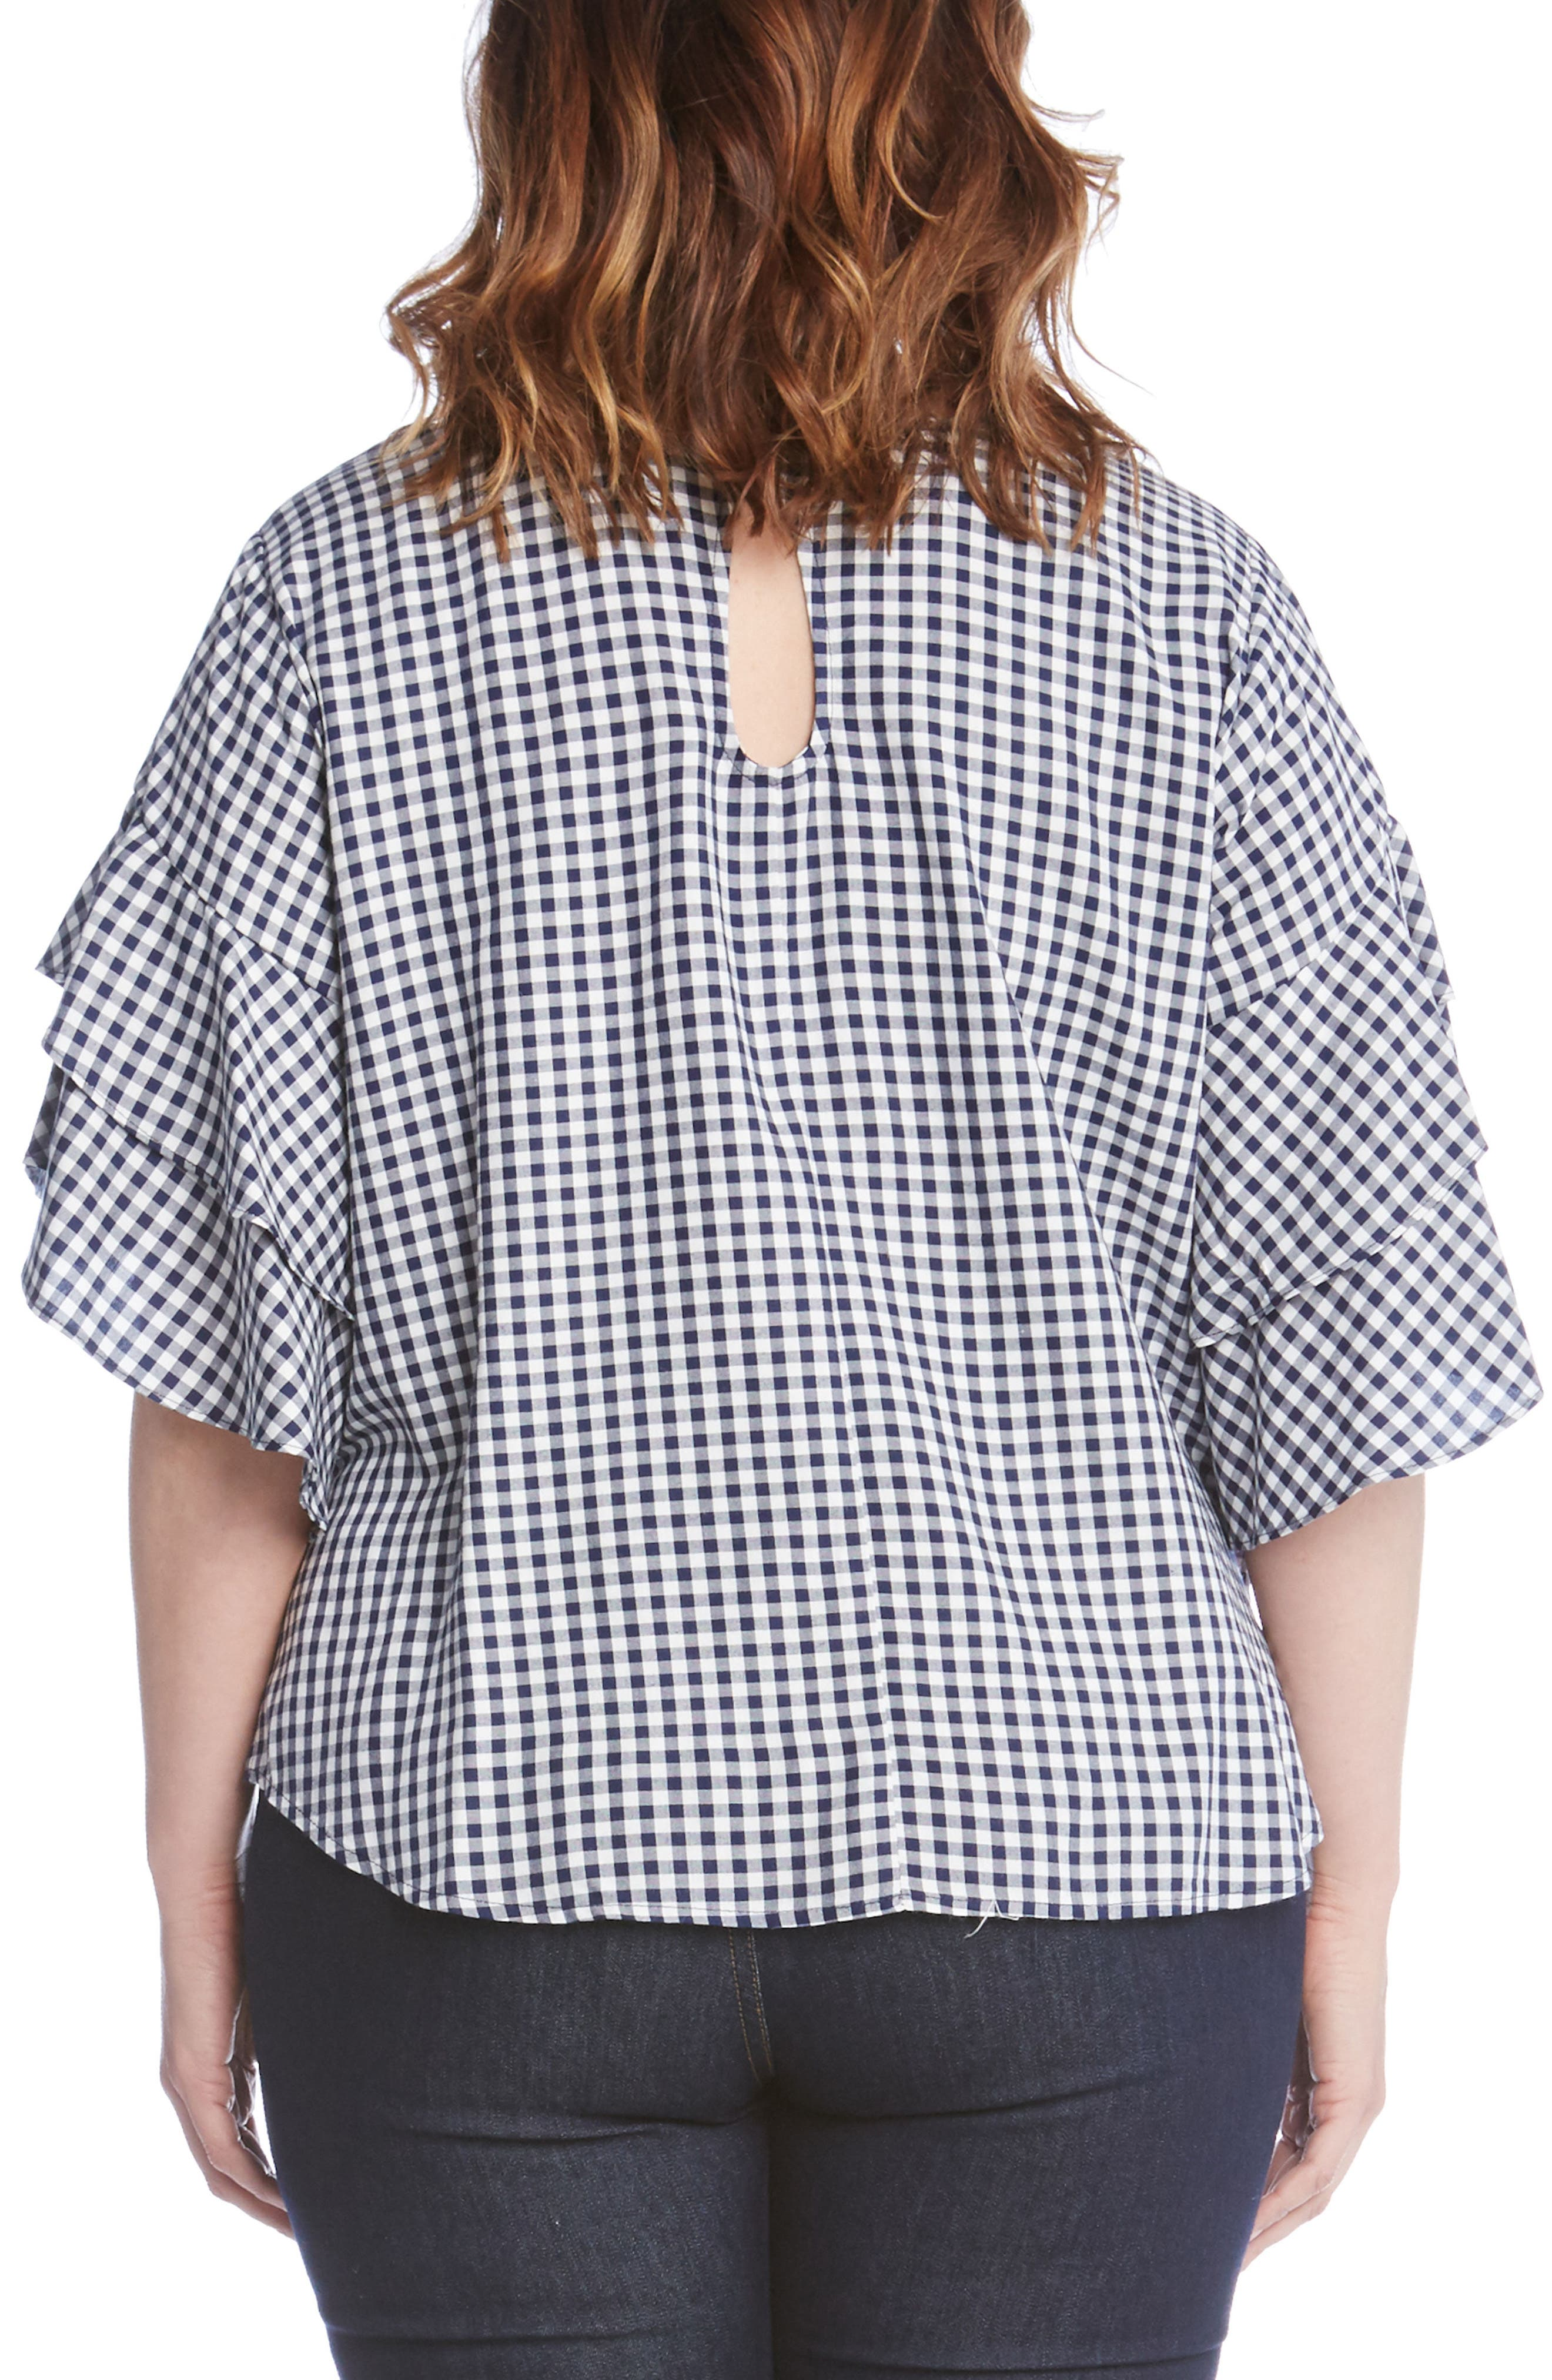 Ruffle Sleeve Gingham Blouse,                             Alternate thumbnail 2, color,                             Check